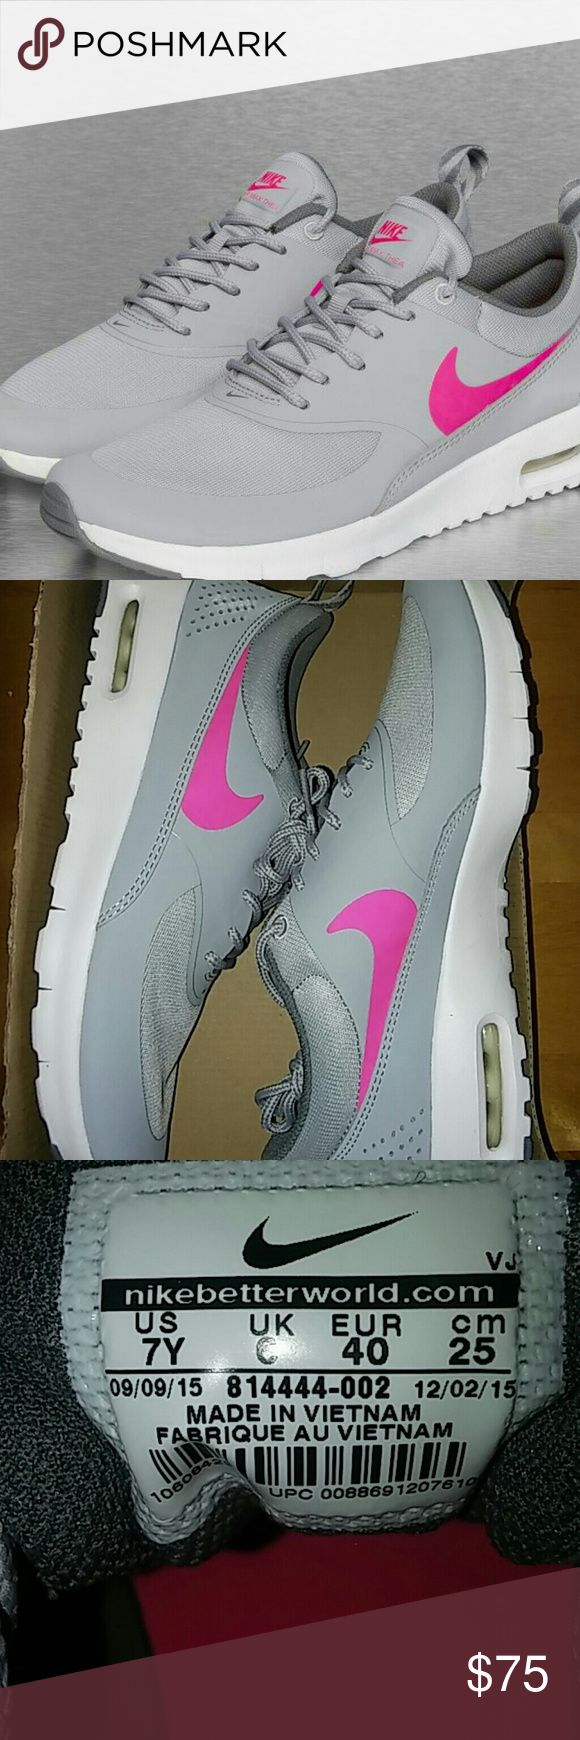 Nike Air Max Thea Authentic Nike Air Max Thea.                                             *Size 7Y - *Women's 7.5-8.  Box/ no lid.  * Please use the offer button. Nike Shoes Athletic Shoes